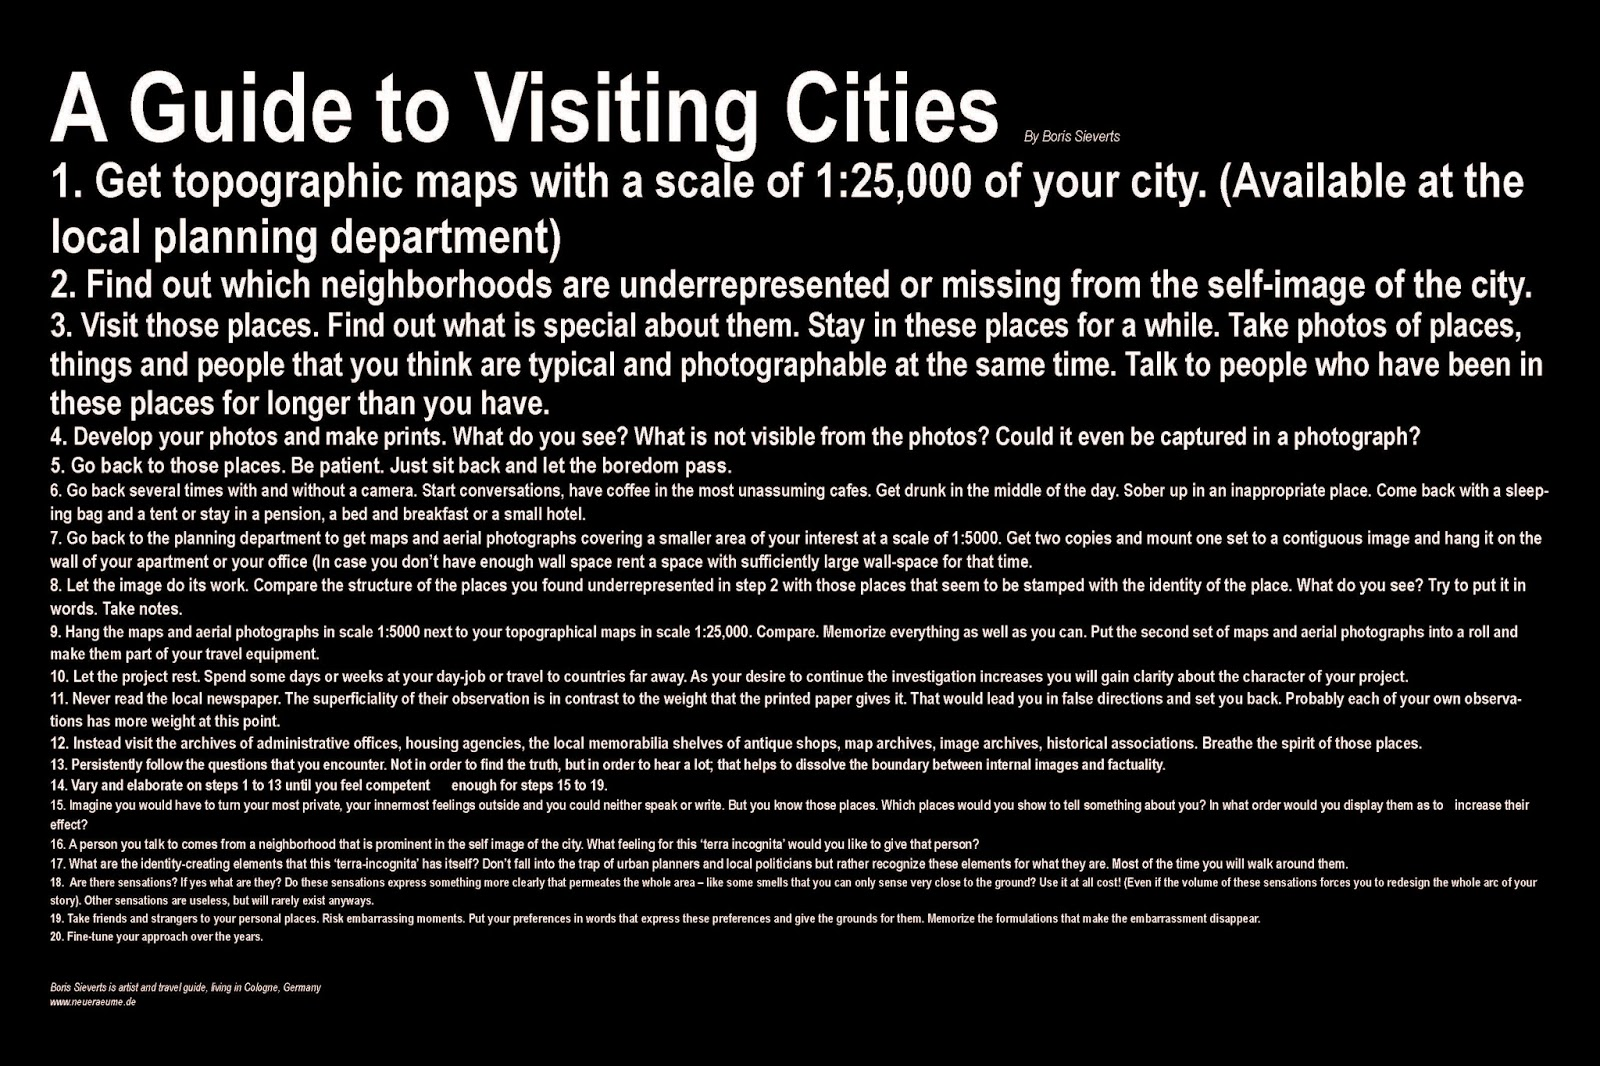 A guide to visiting cities